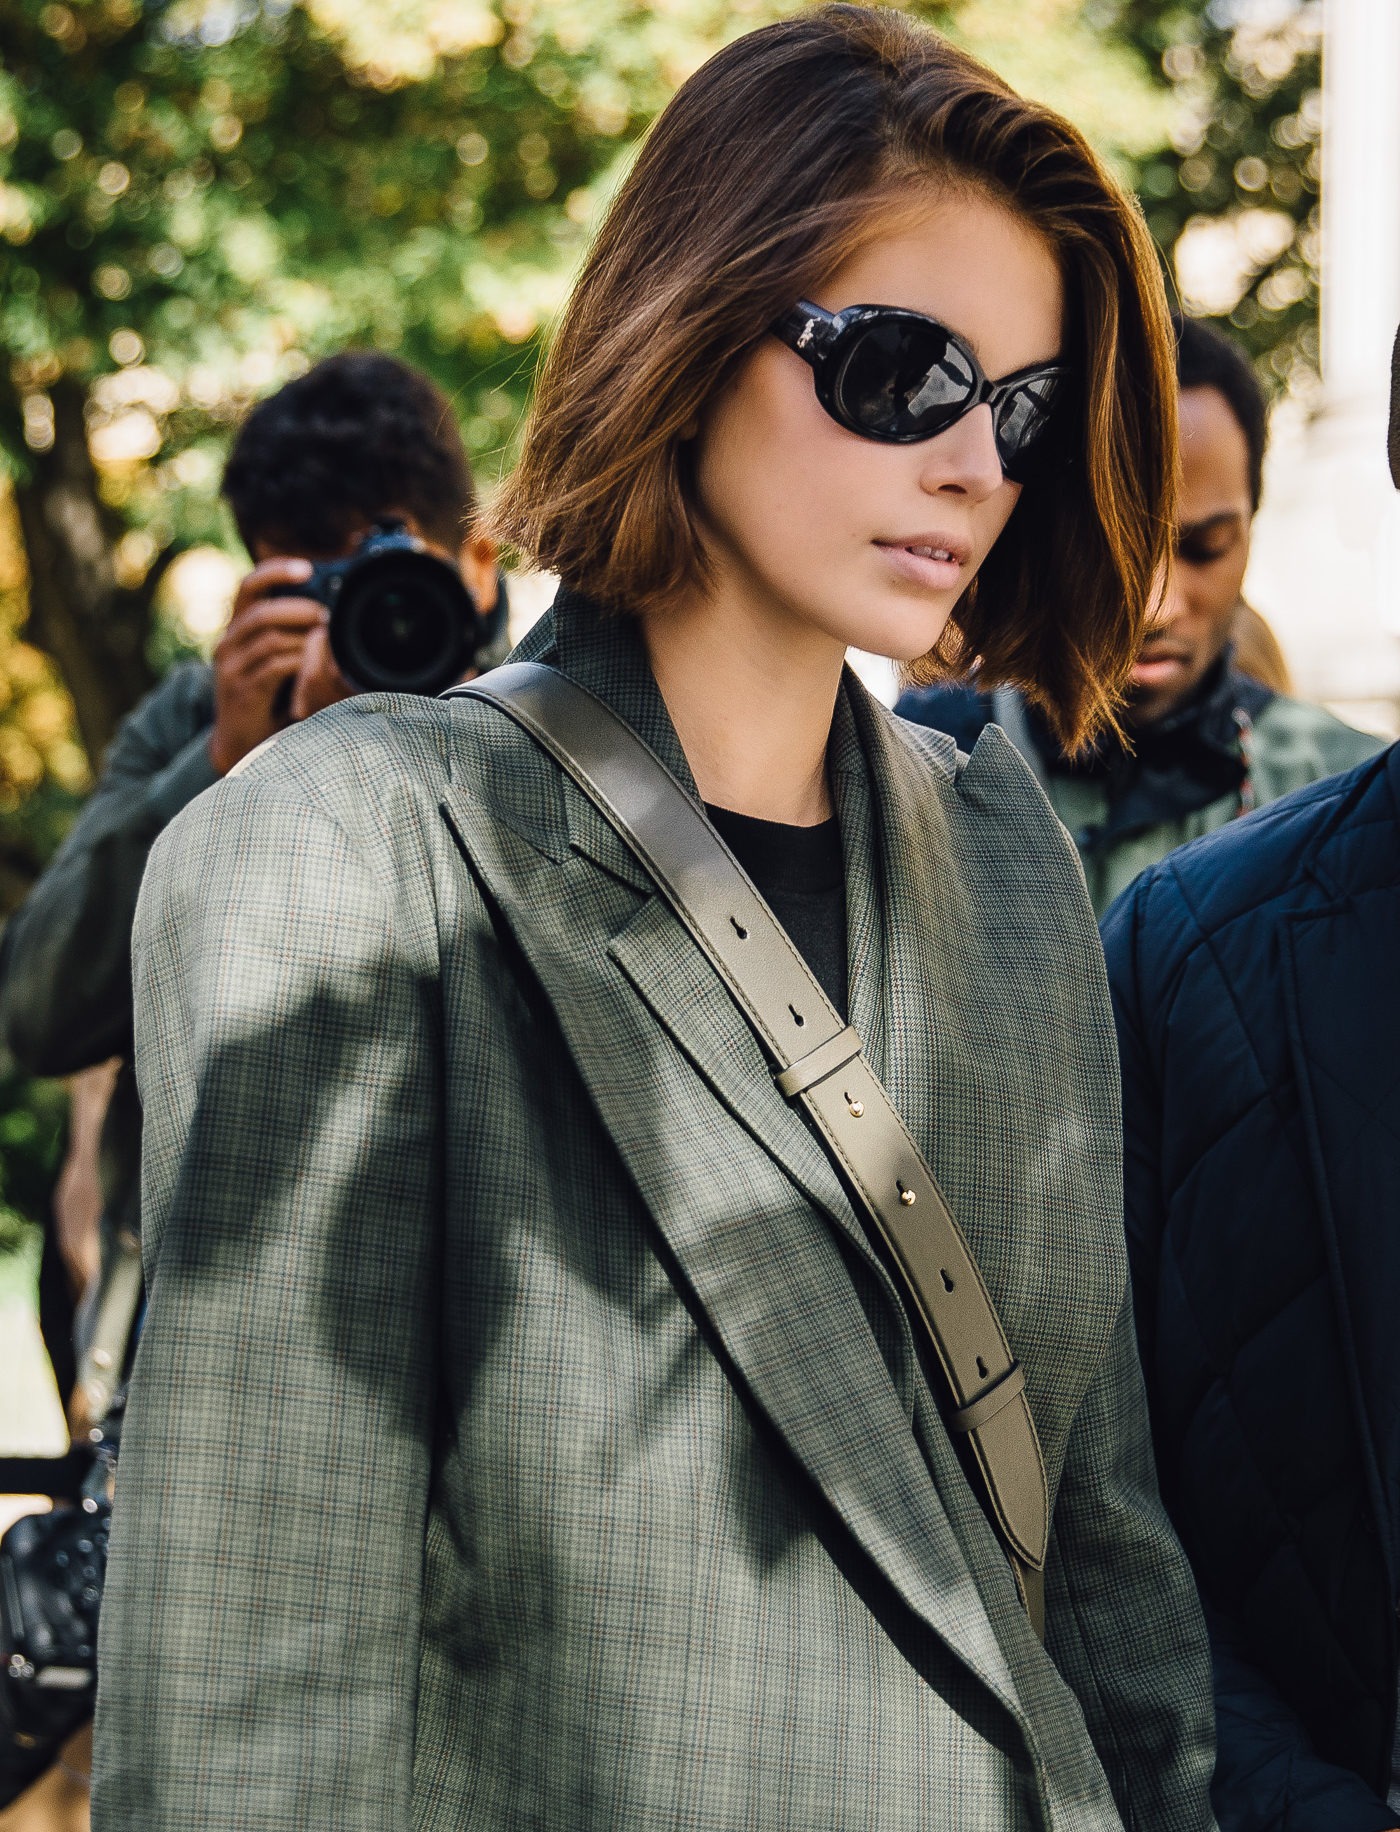 Kaia-Gerber-by-STYLEDUMONDE-Street-Style-Fashion-Photography20190930_48A6669